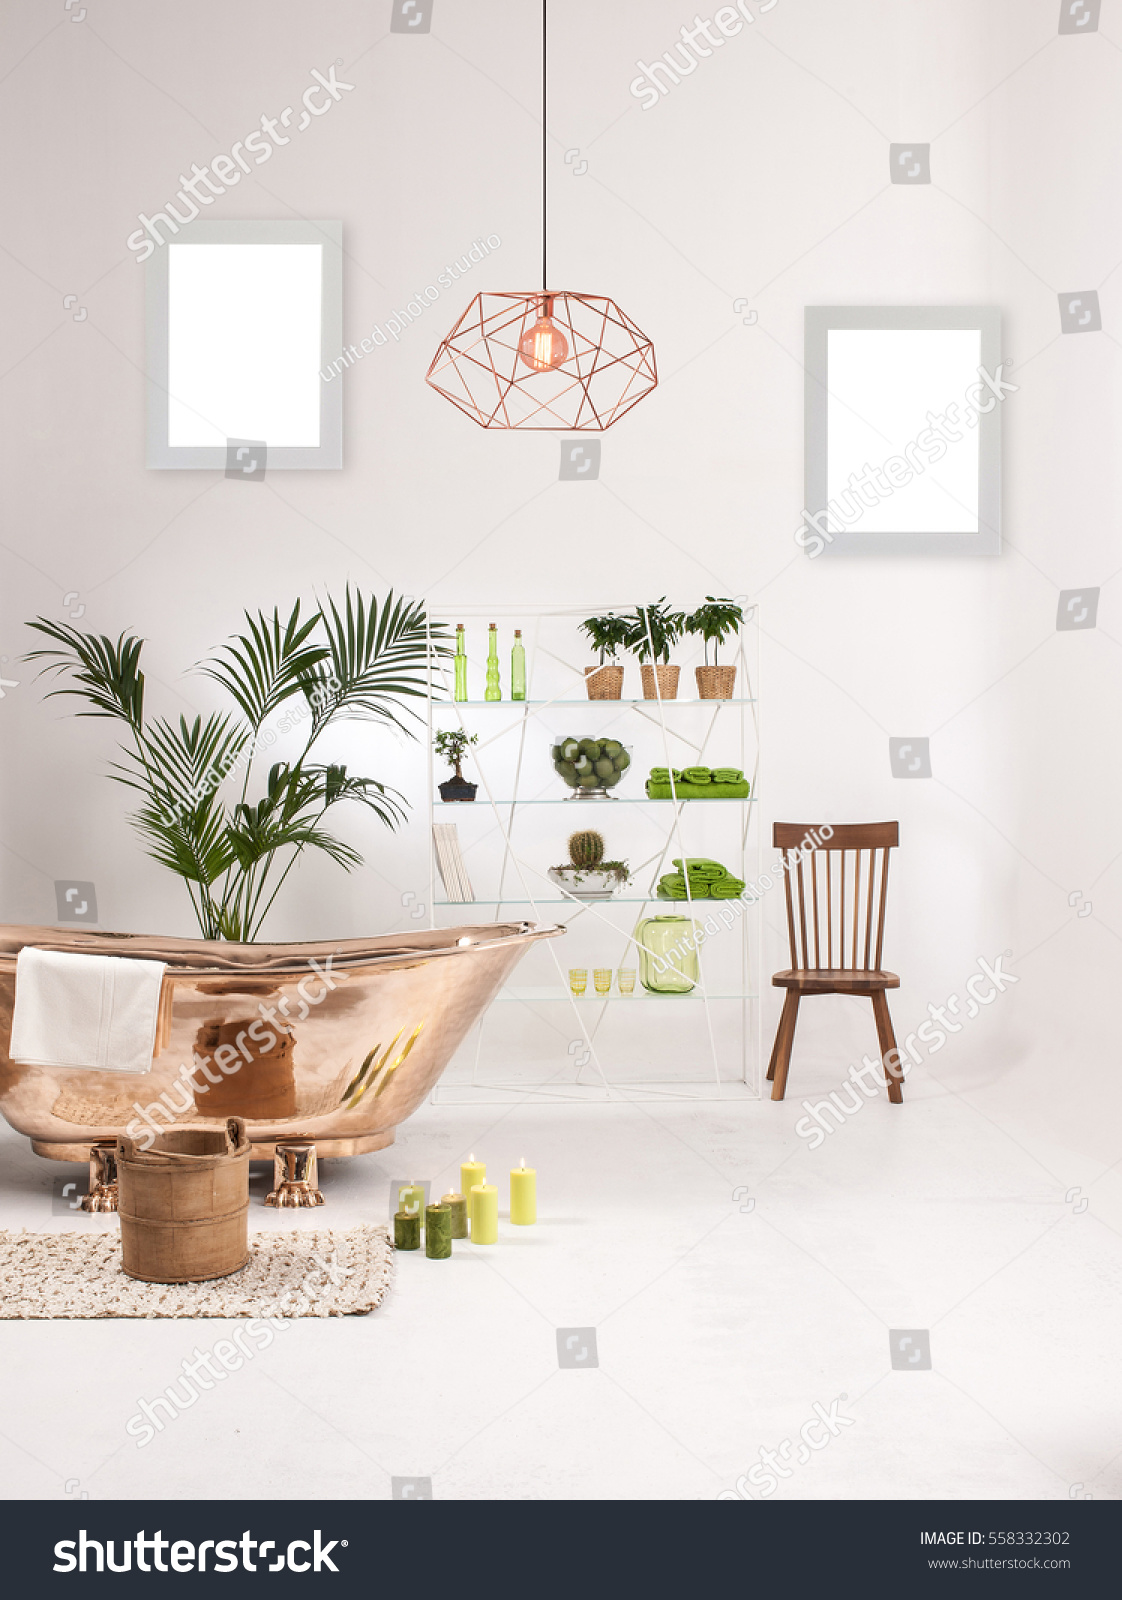 Natural Wood Furniture White Wall Decor Stock Photo (Download Now ...